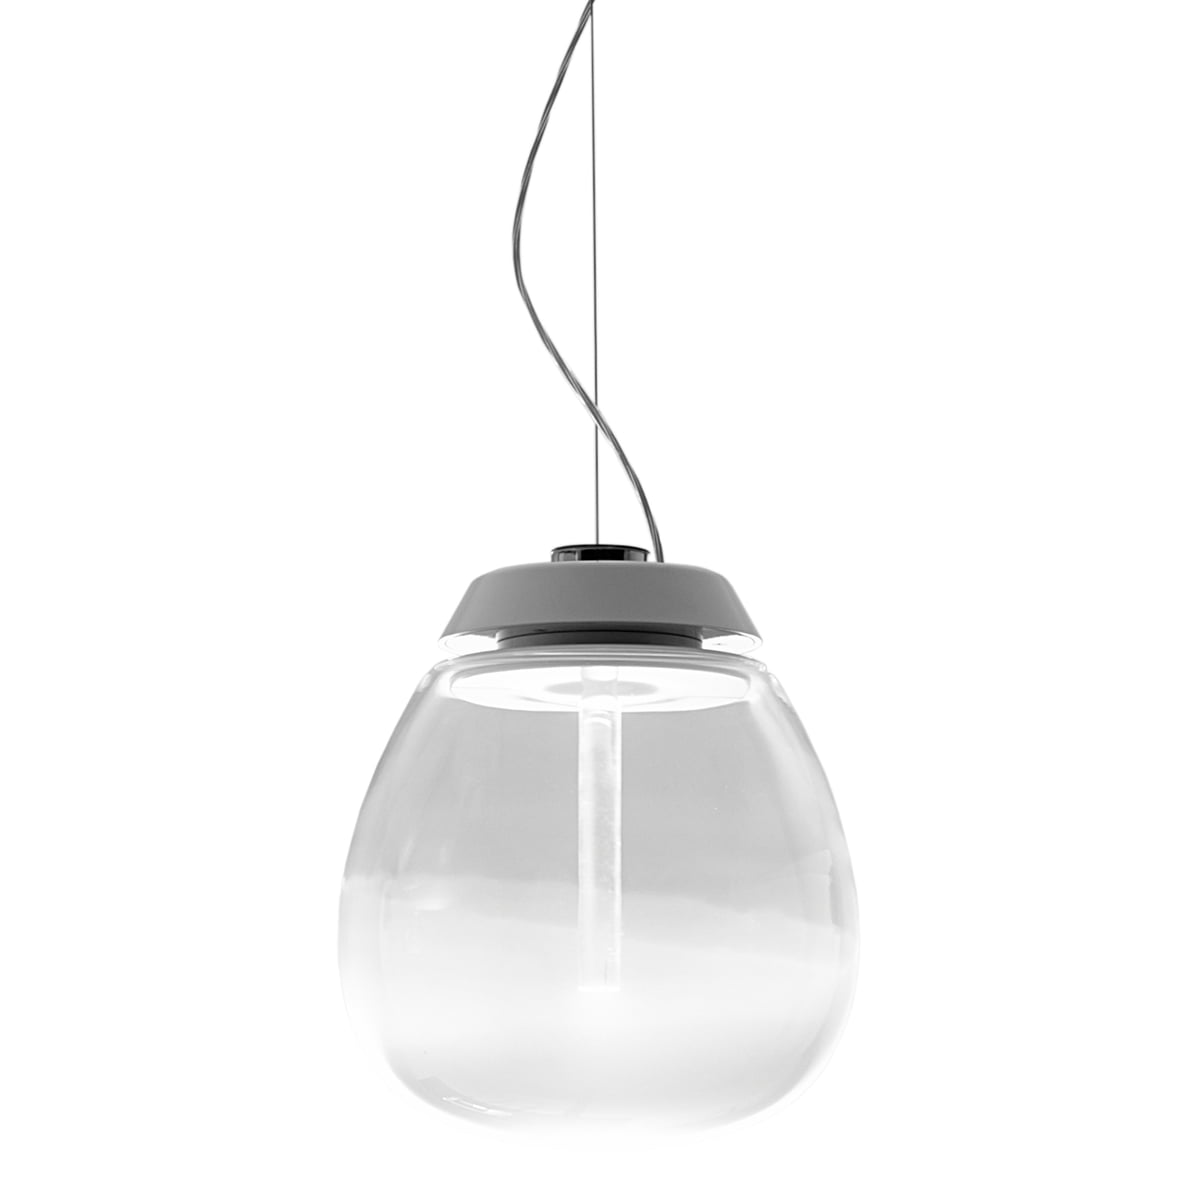 Empatia pendant lamp artemide shop artemide empatia led pendant lamp white aloadofball Choice Image